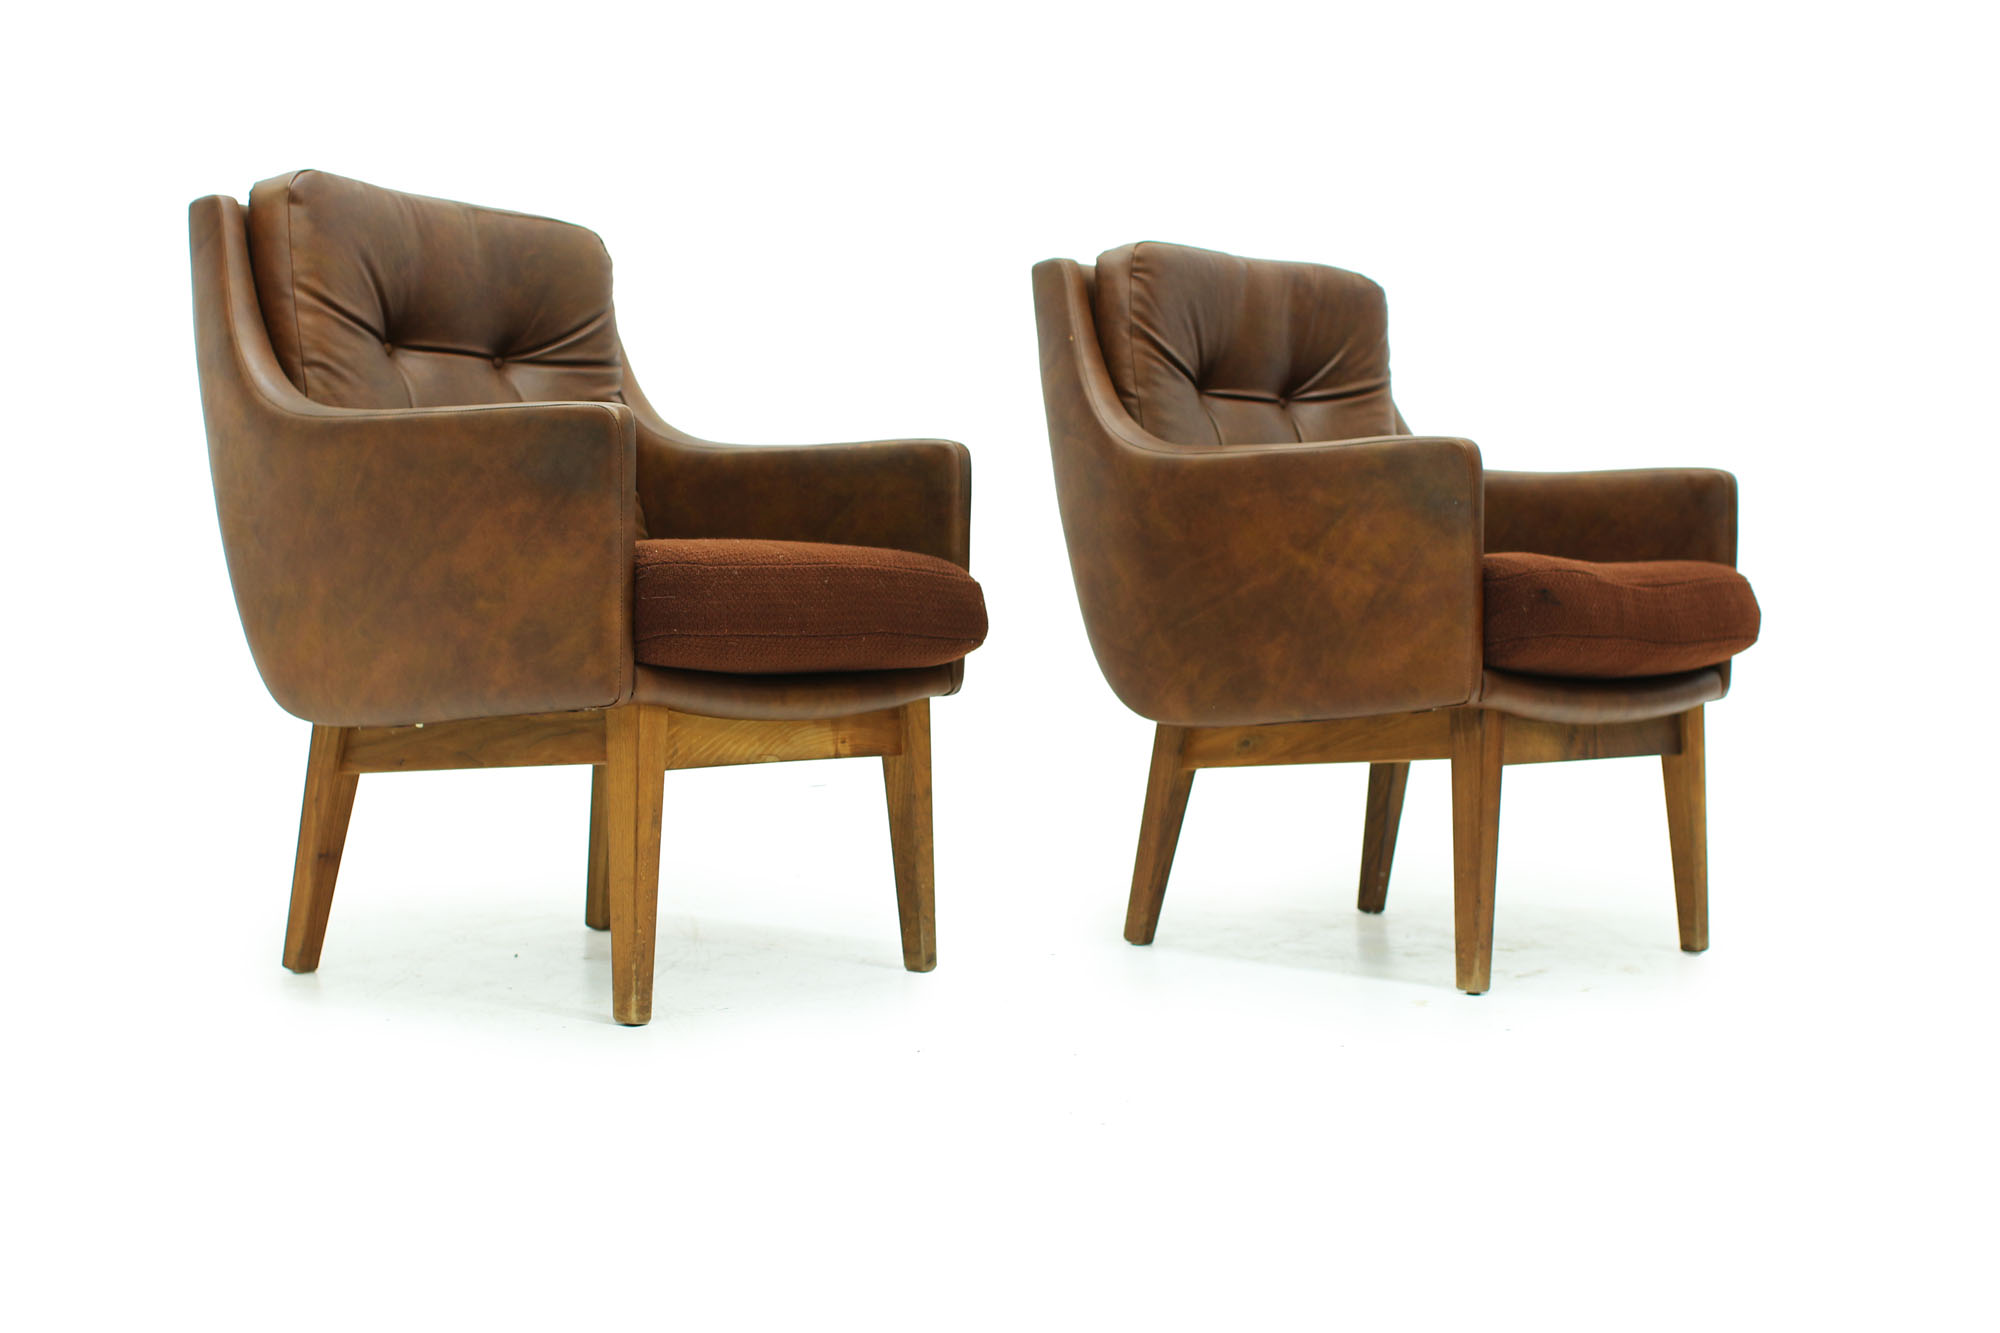 Set of tufted lounge chairs with original brown leatherette from the 60s (5).jpg